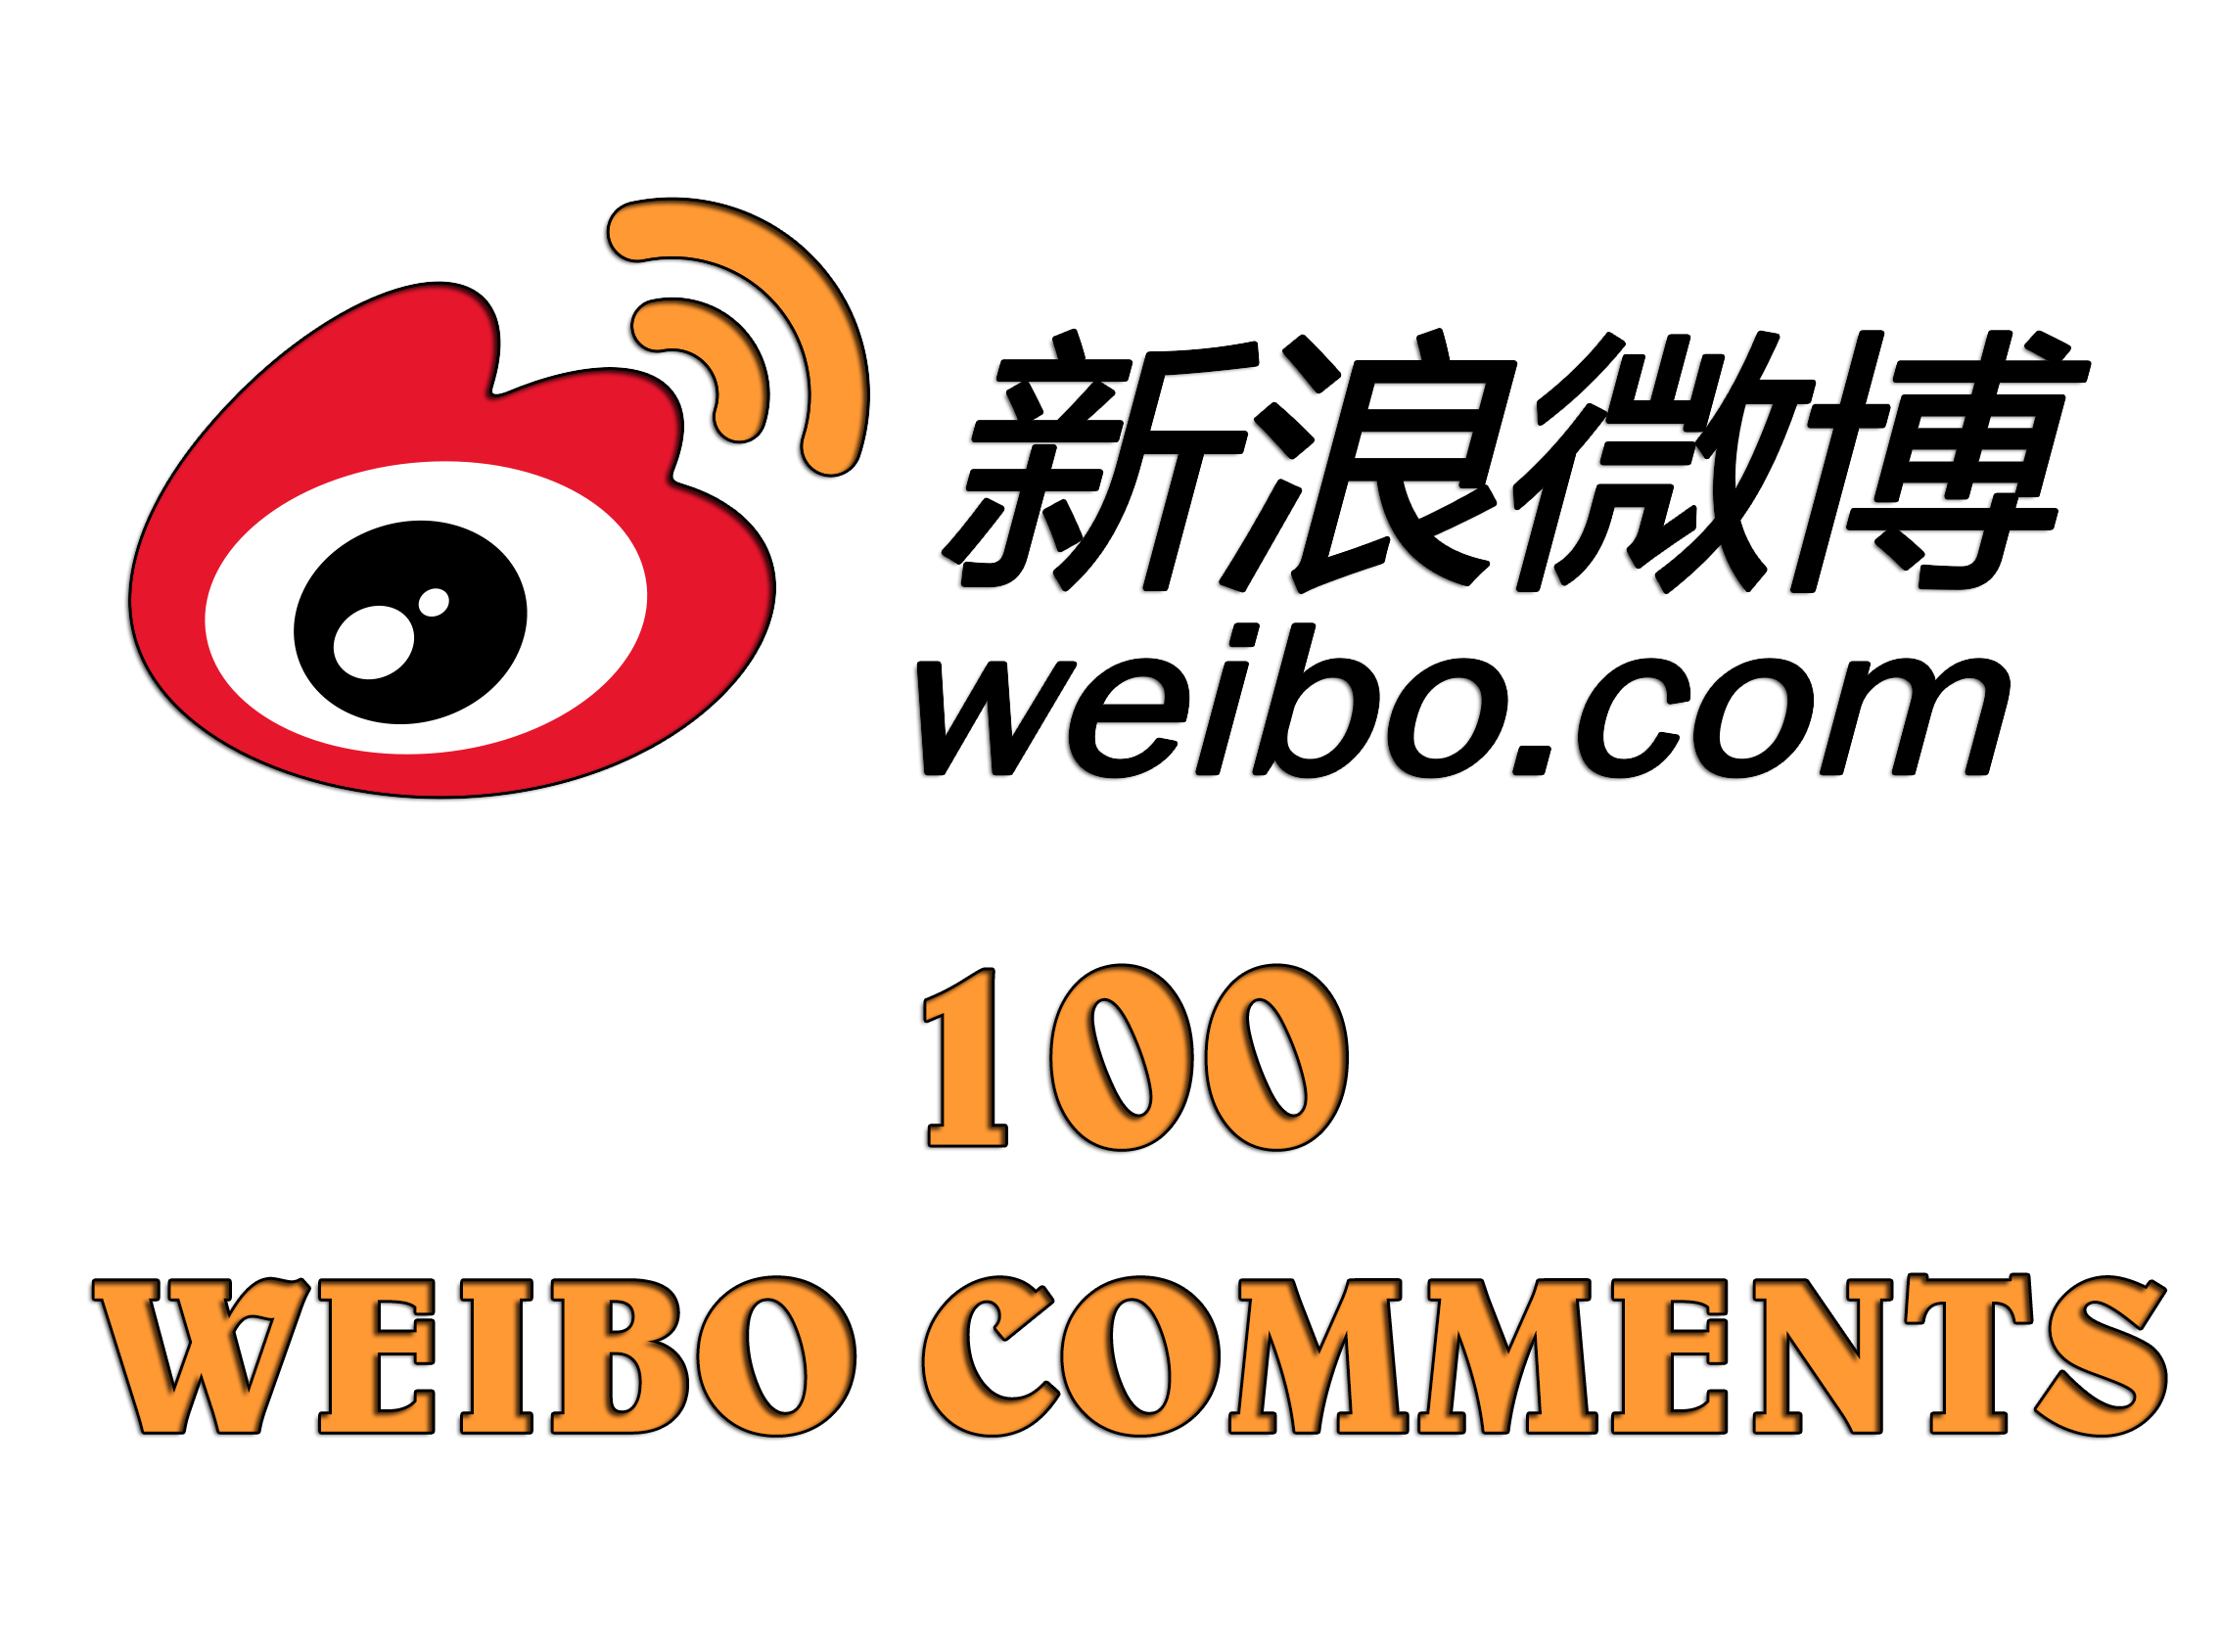 100 Sina Weibo comments